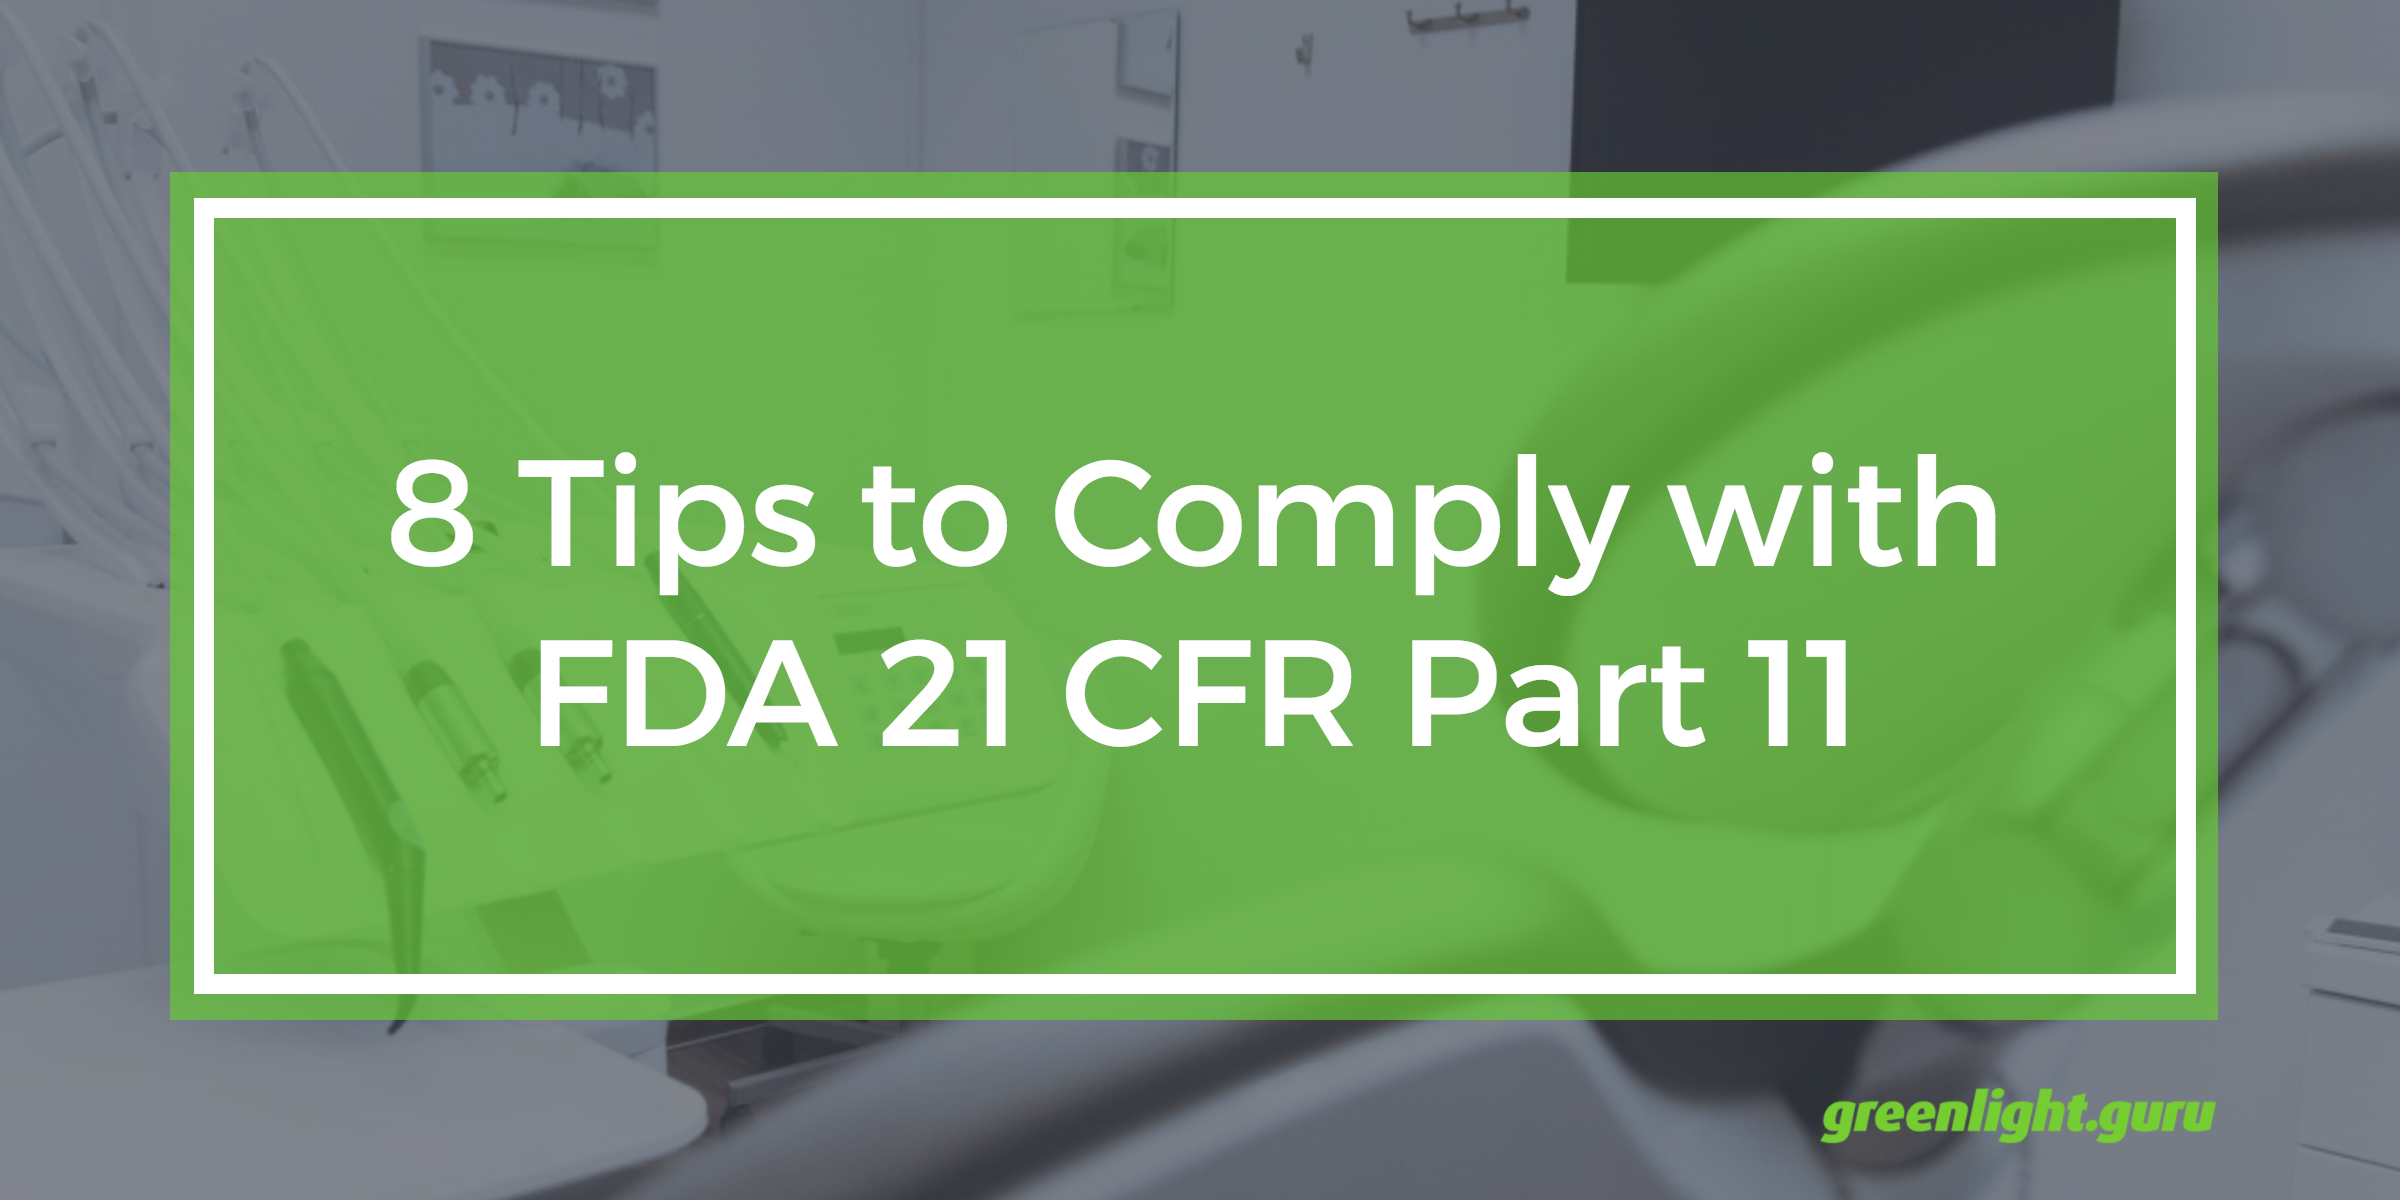 8 Tips to Comply With FDA 21 CFR Part 11 - Featured Image